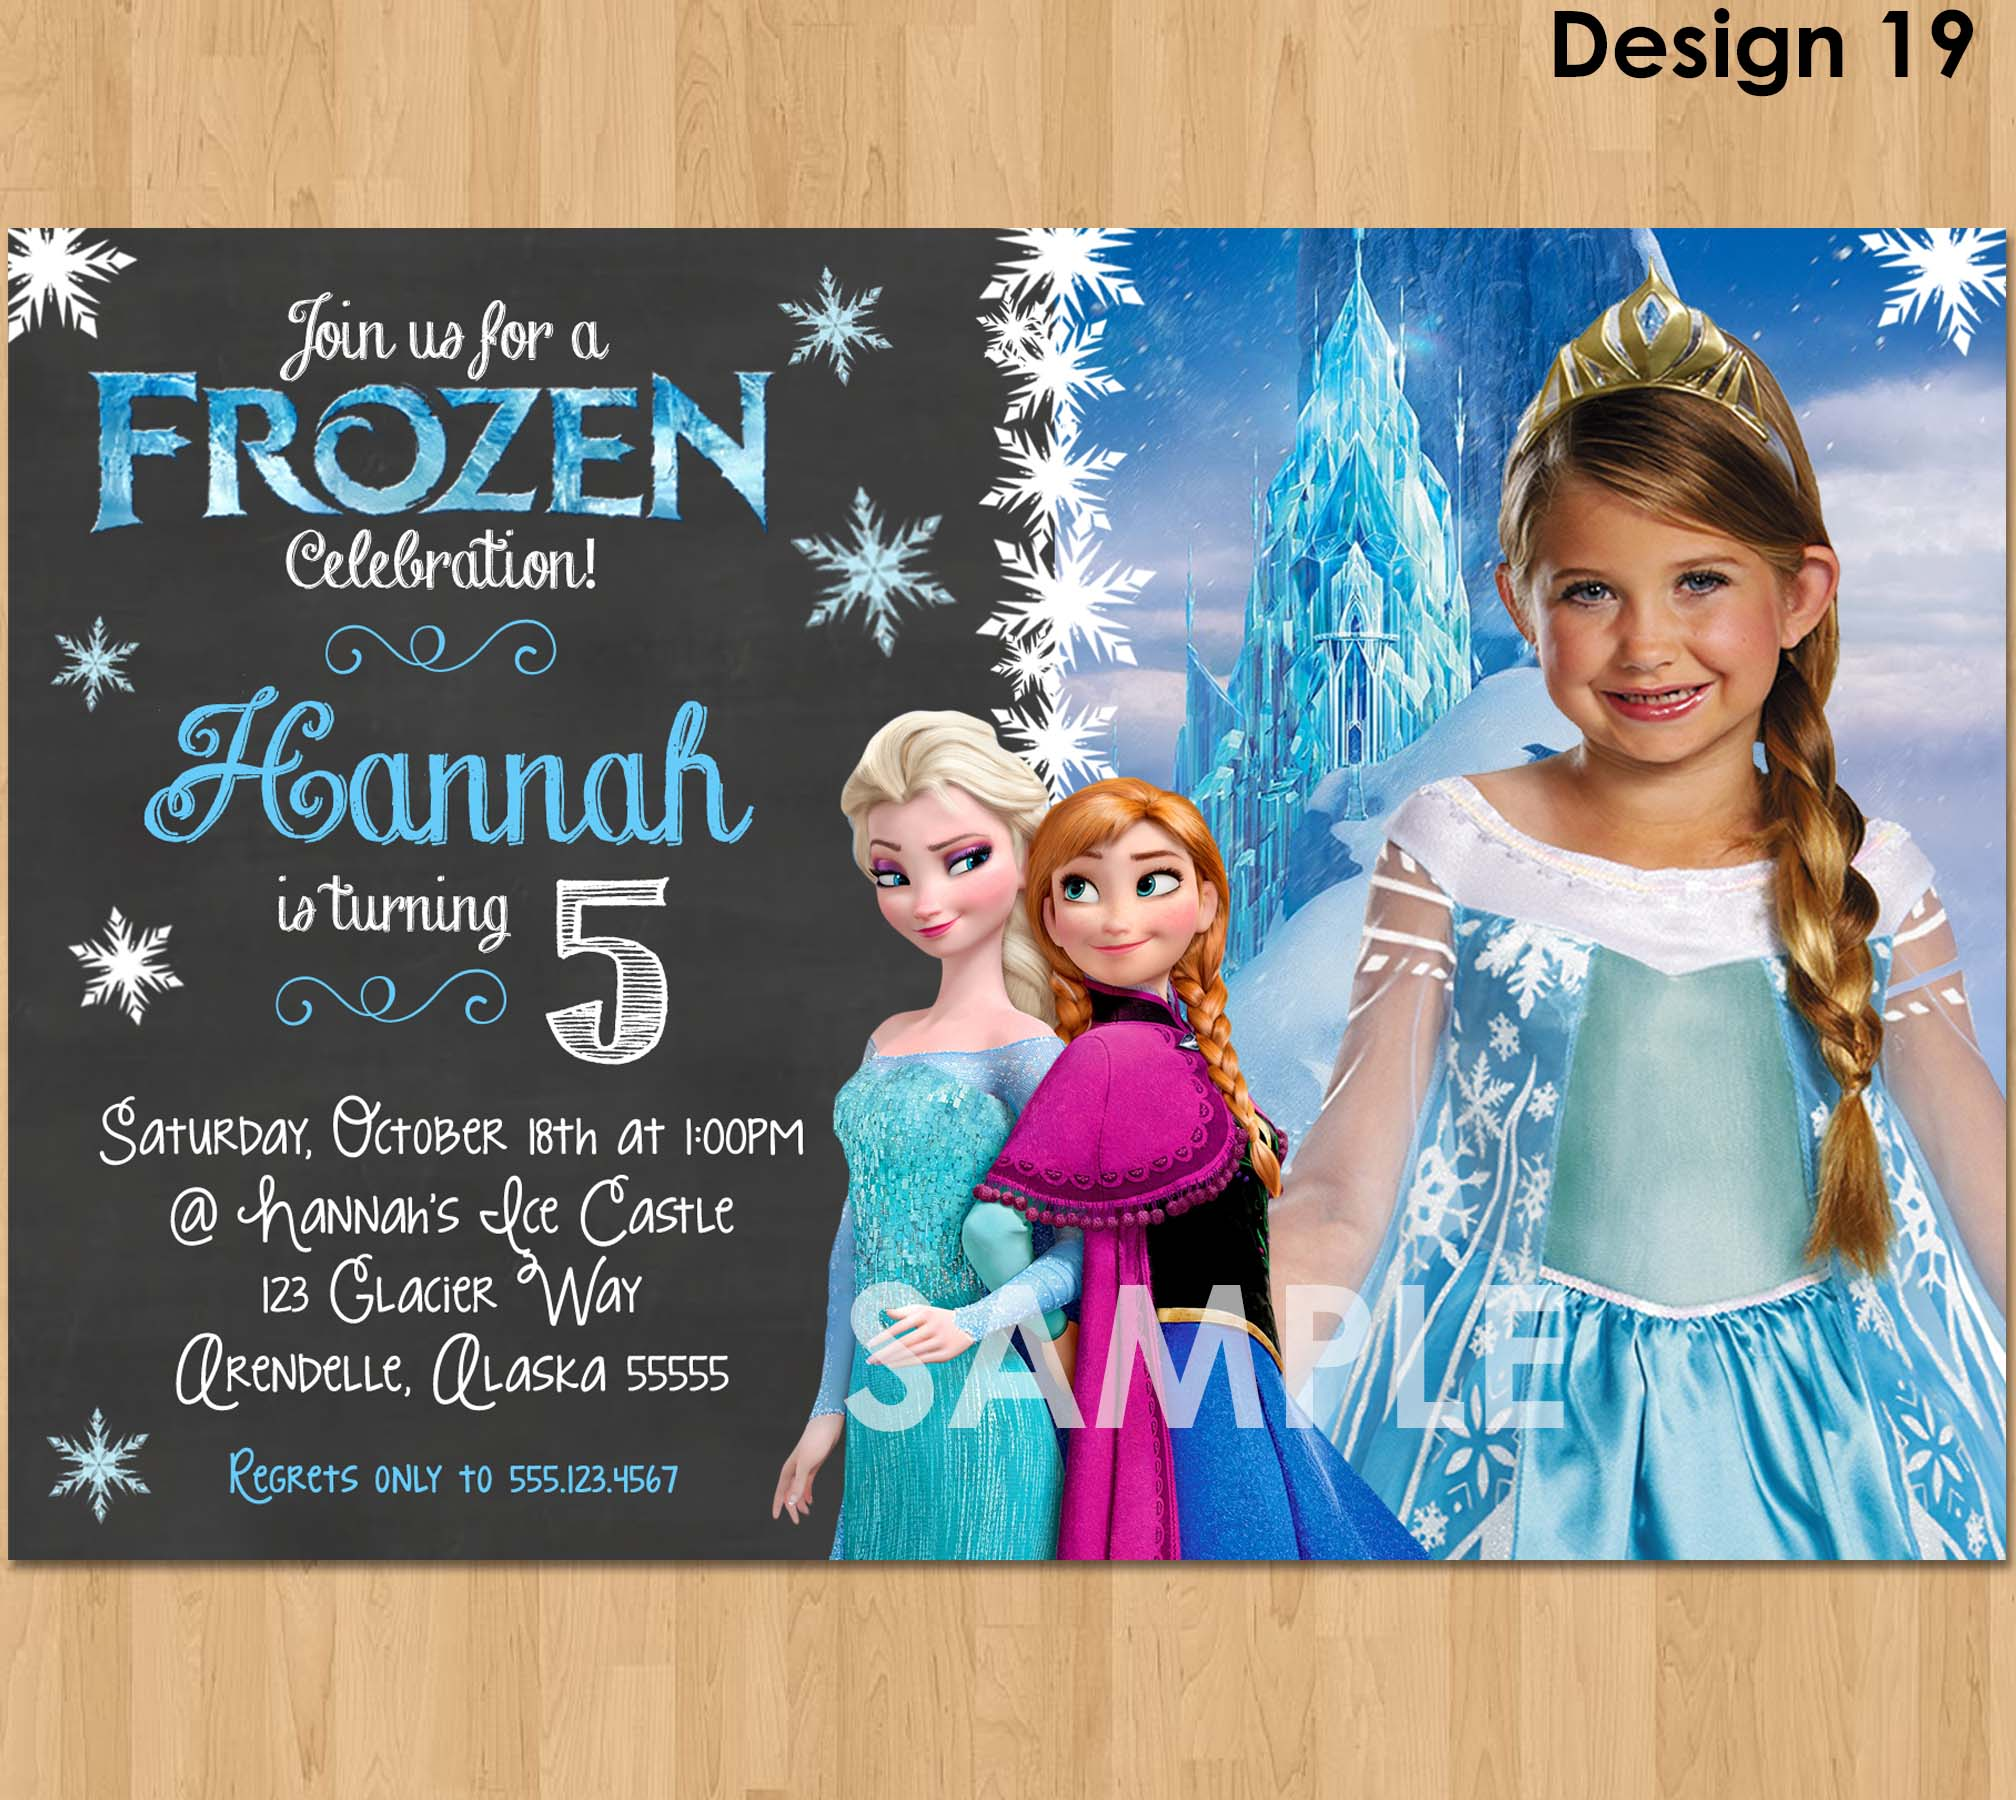 photograph regarding Frozen Printable Invitations named Frozen Chalkboard Invitation - Frozen Image Invitation - Disney Frozen Birthday Invitation Social gathering Invite Suggestions Printable Elsa Anna Electronic